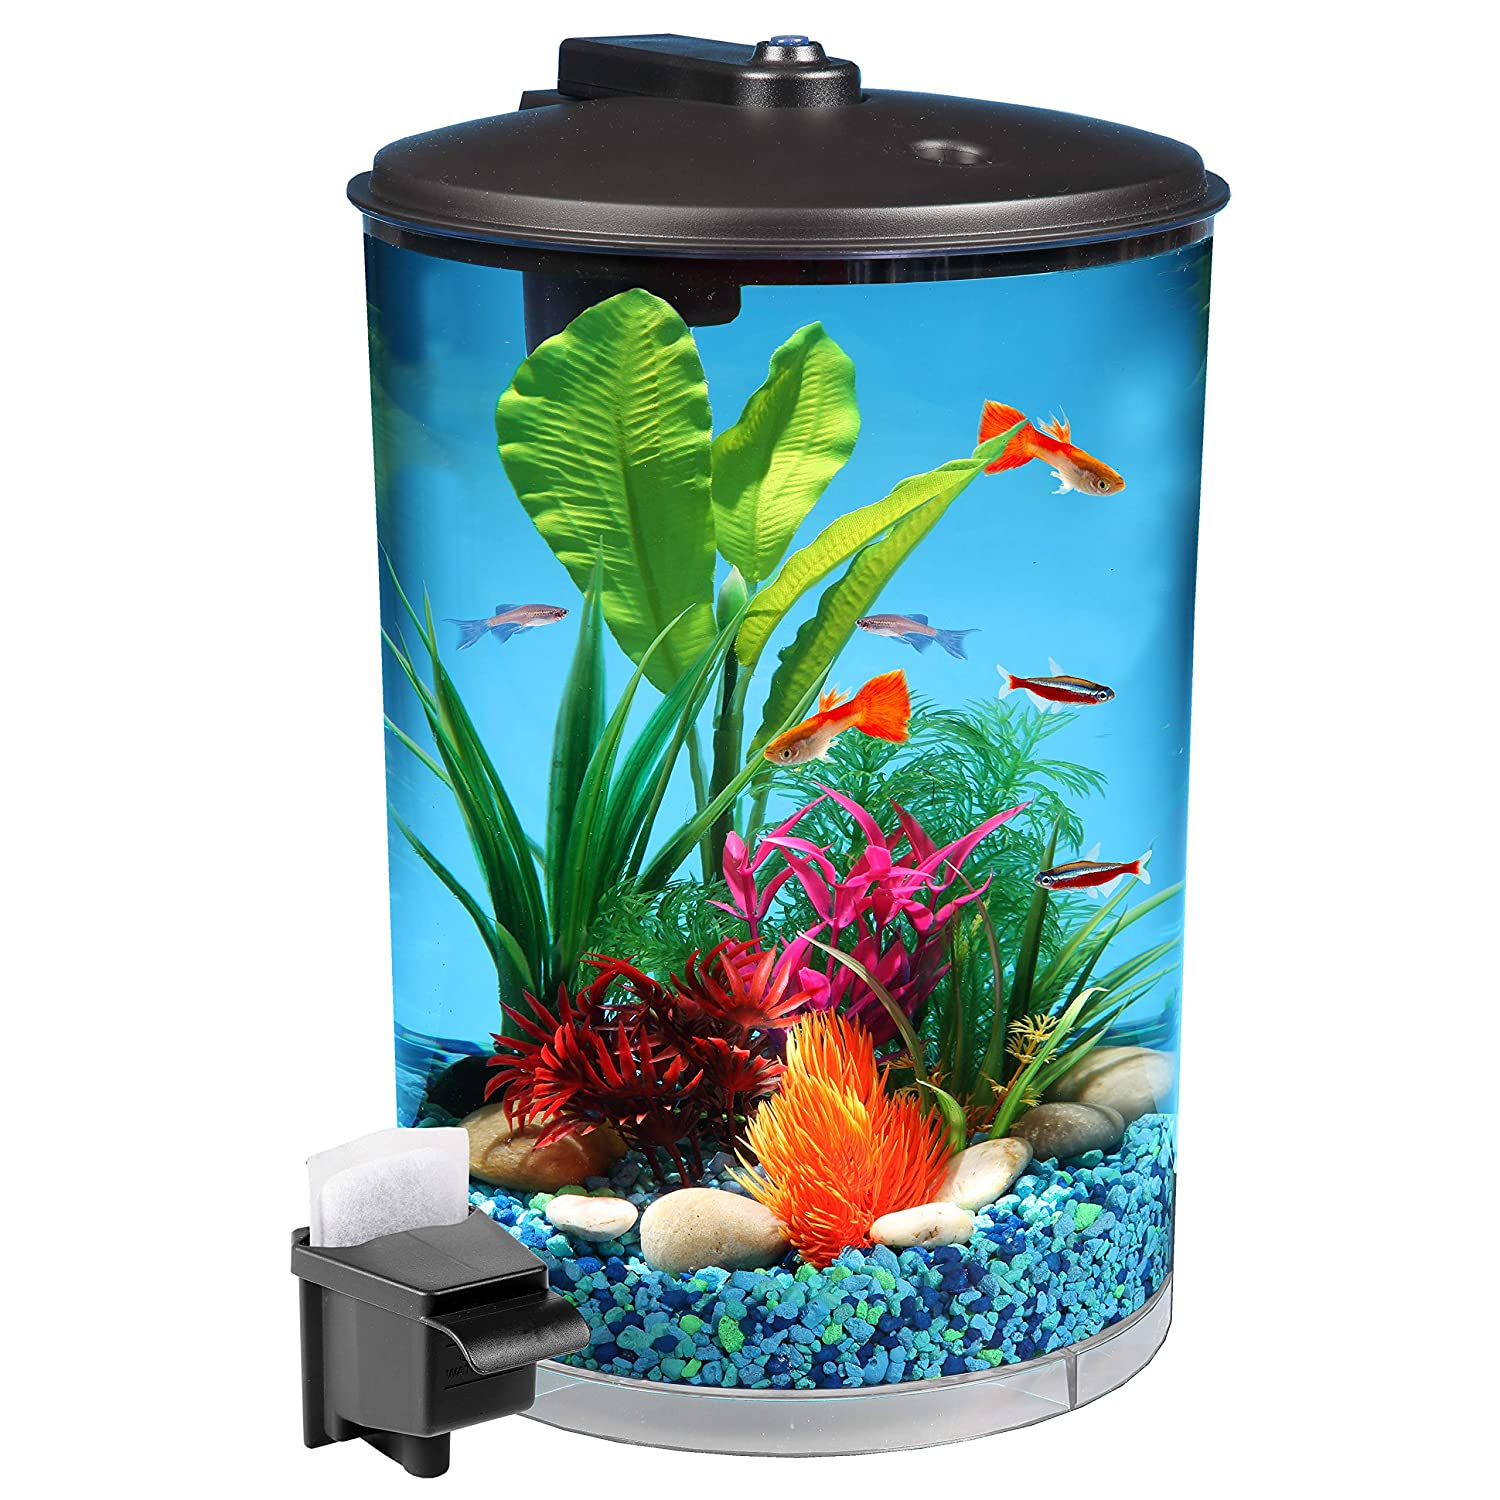 Pleasing Amazon Com Koller Products Aquaview 3 Gallon 360 With Power Filter Wiring Digital Resources Remcakbiperorg